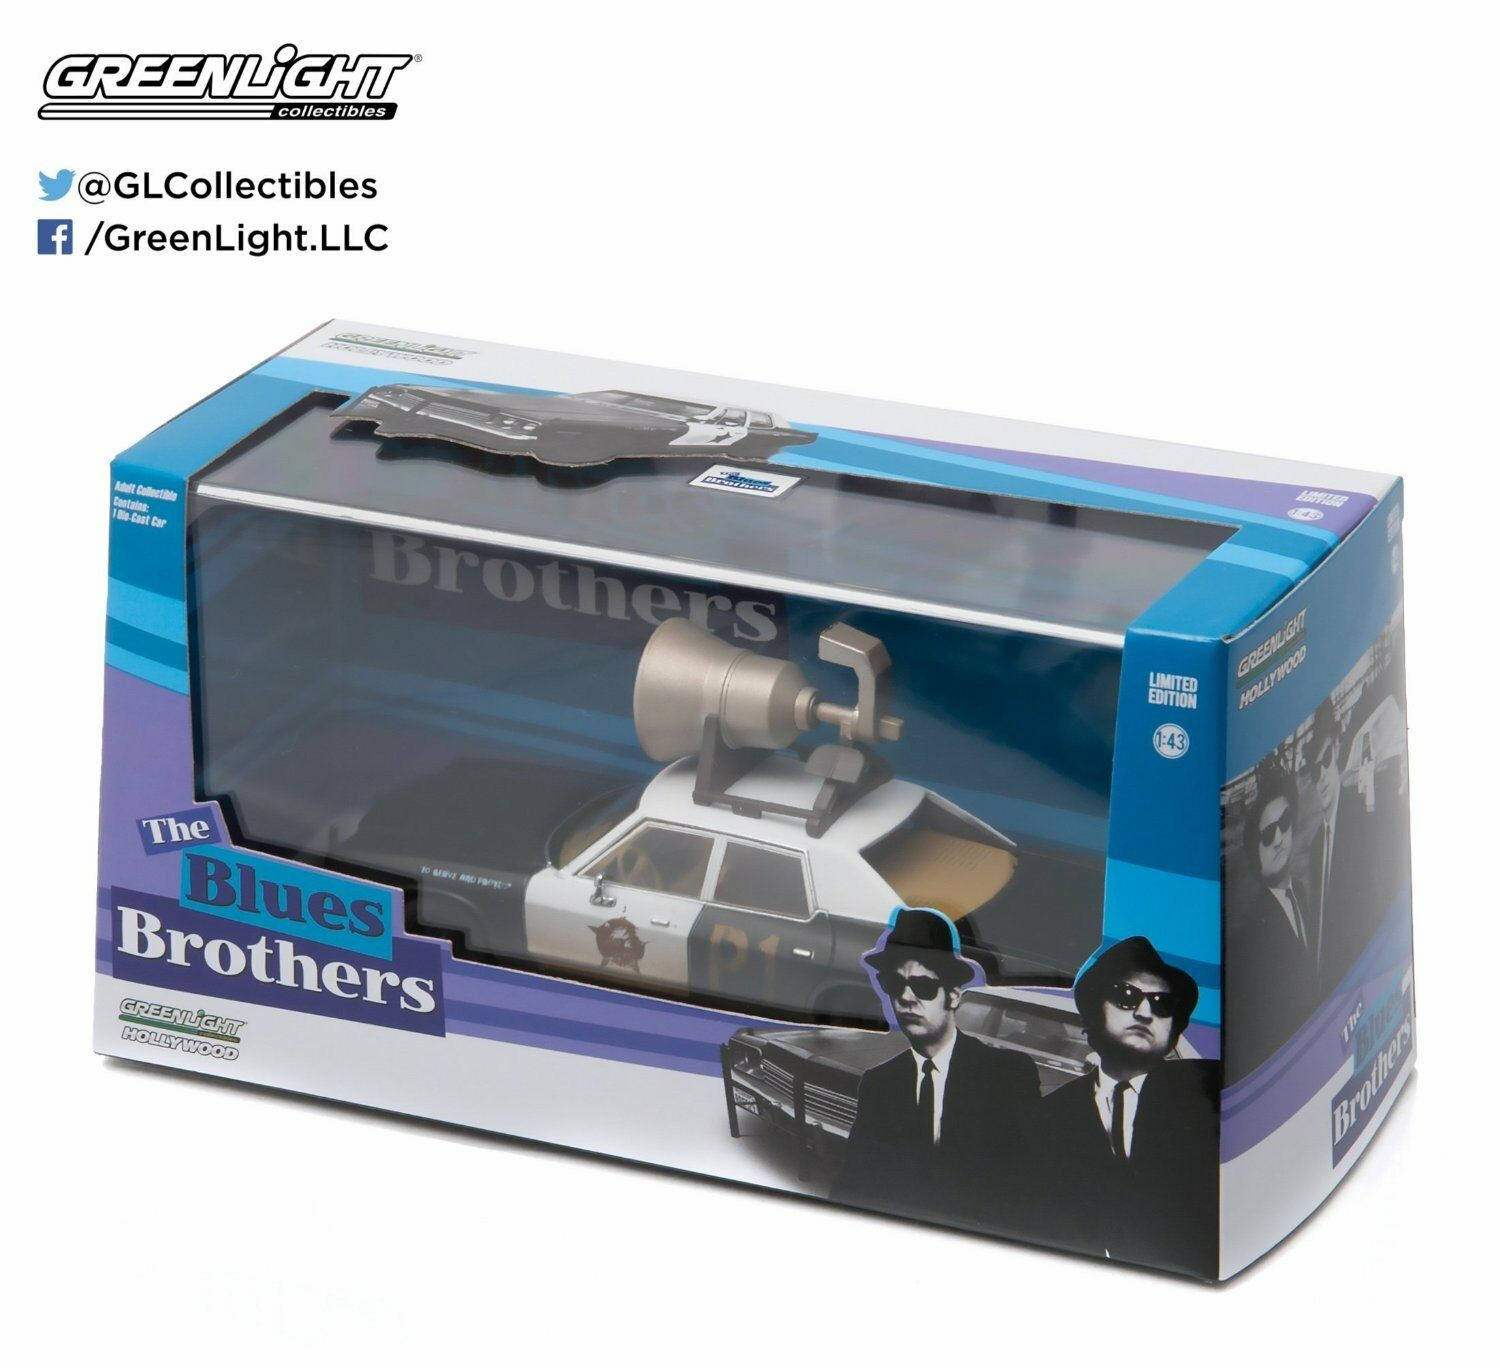 Greenlight 1 43 Scale bluees Bredhers 1974 Dodge Monaco Horn On Roof Model Car